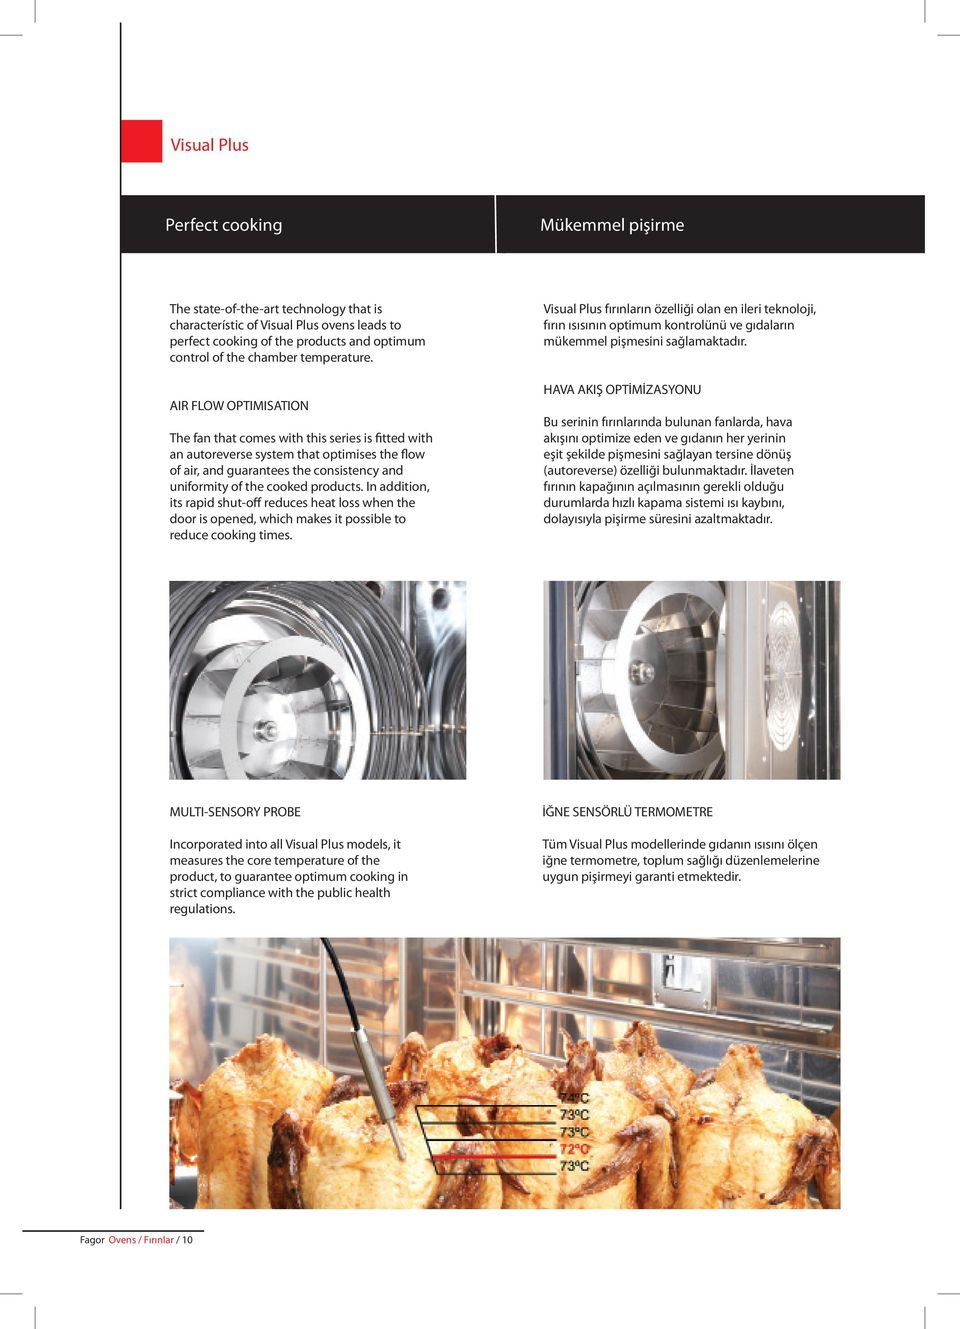 AIR FLOW OPTIMISATION The fan that comes with this series is fitted with an autoreverse system that optimises the flow of air, and guarantees the consistency and uniformity of the cooked products.